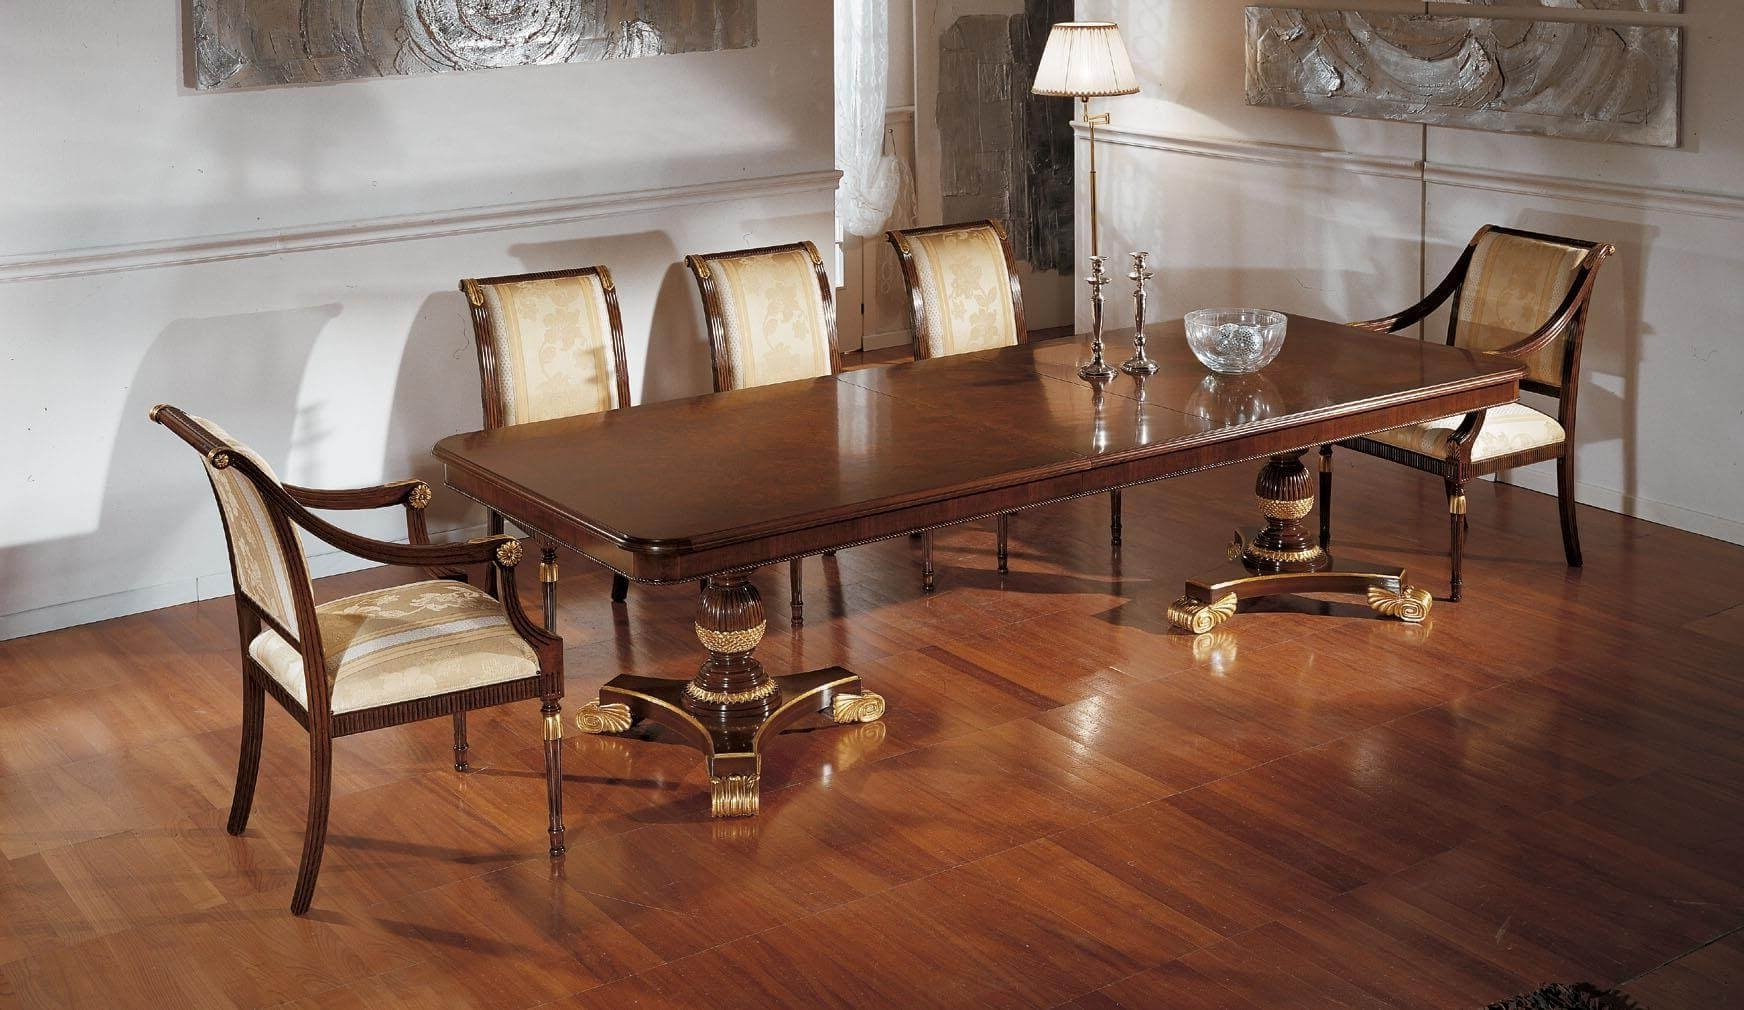 Mondital Regarding Famous Italian Dining Tables (Gallery 21 of 25)